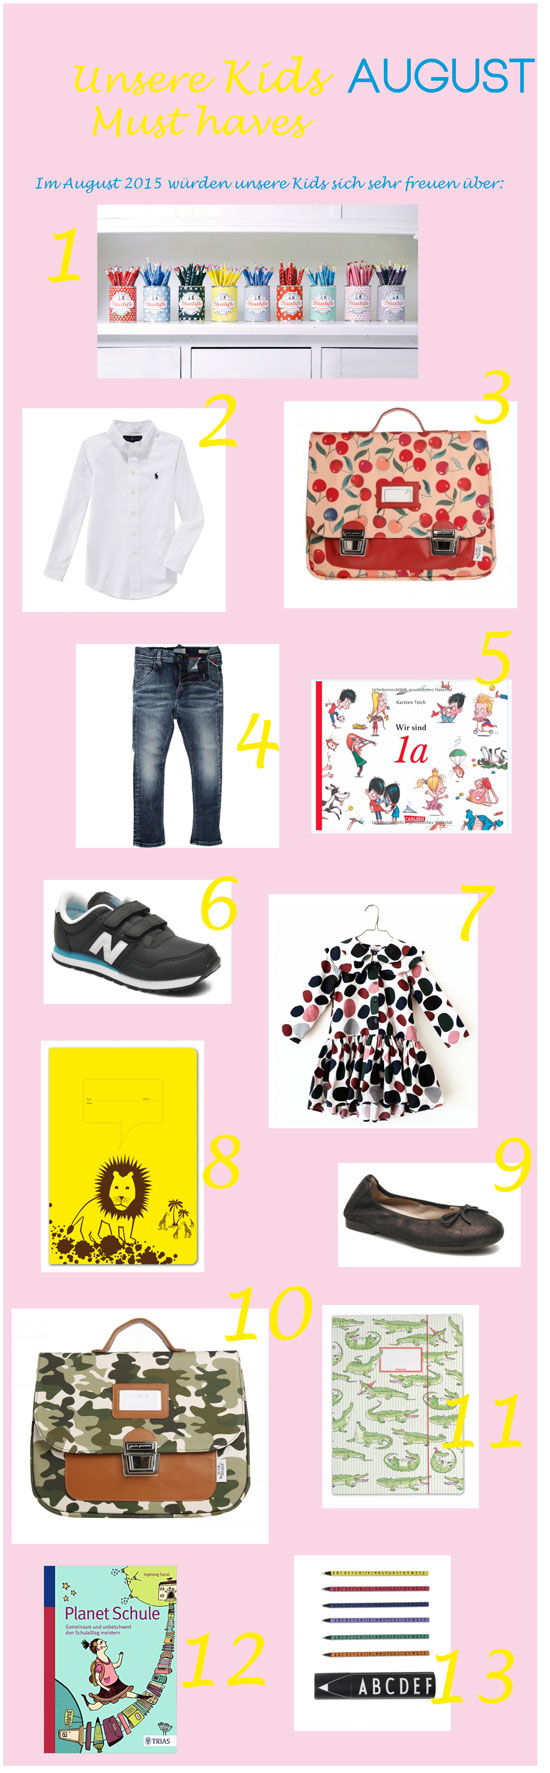 August-Kids-Must-haves-2015